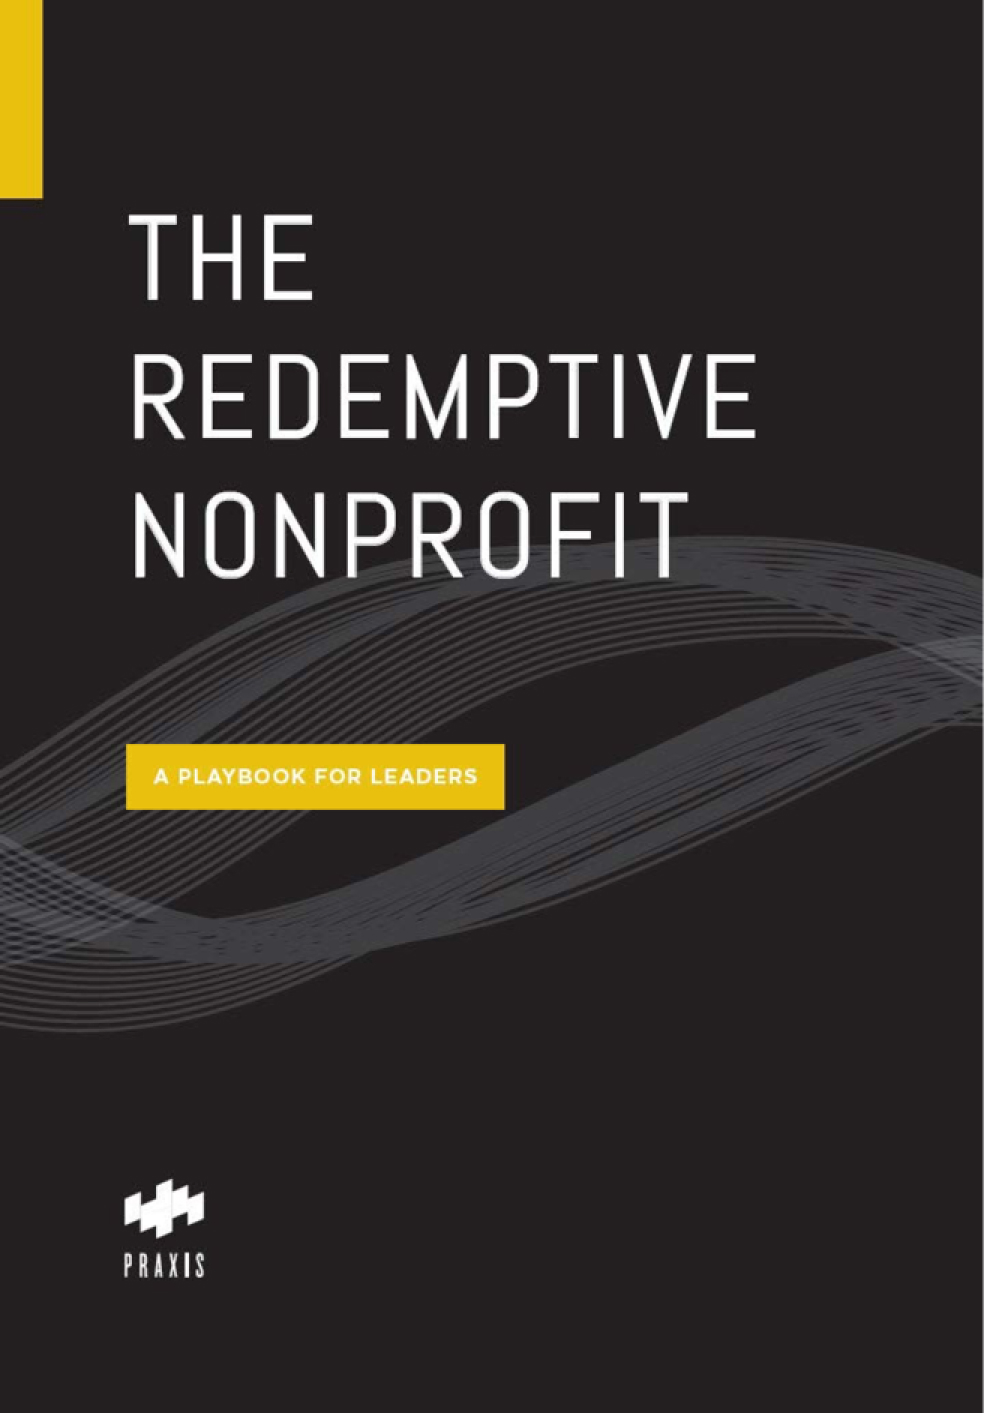 """A mockup of the book cover for """"The Redemptive Nonprofit"""""""